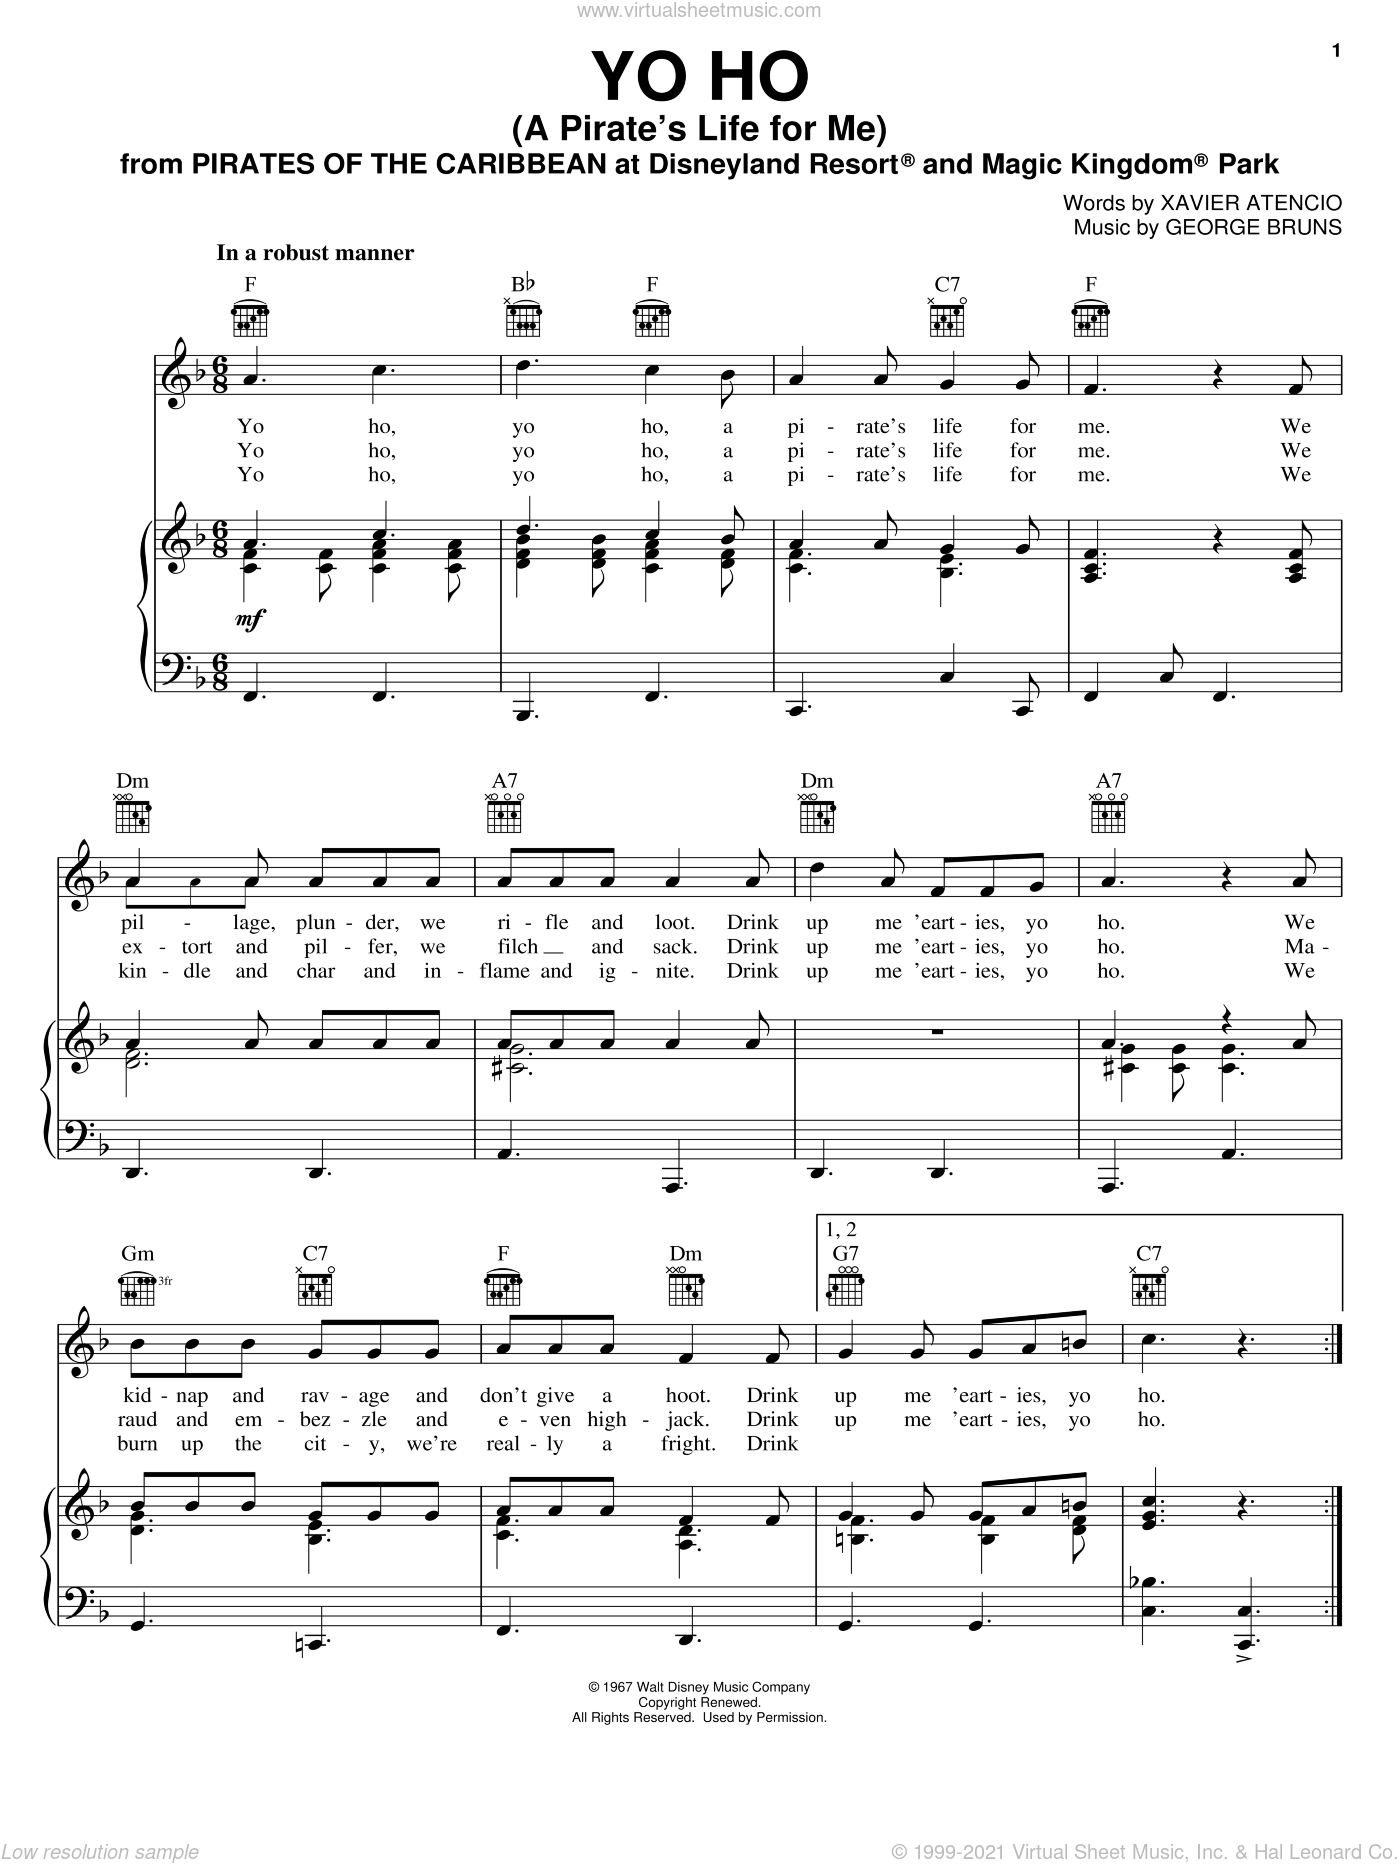 Yo Ho (A Pirate's Life For Me) sheet music for voice, piano or guitar by Xavier Atencio and George Bruns, intermediate skill level